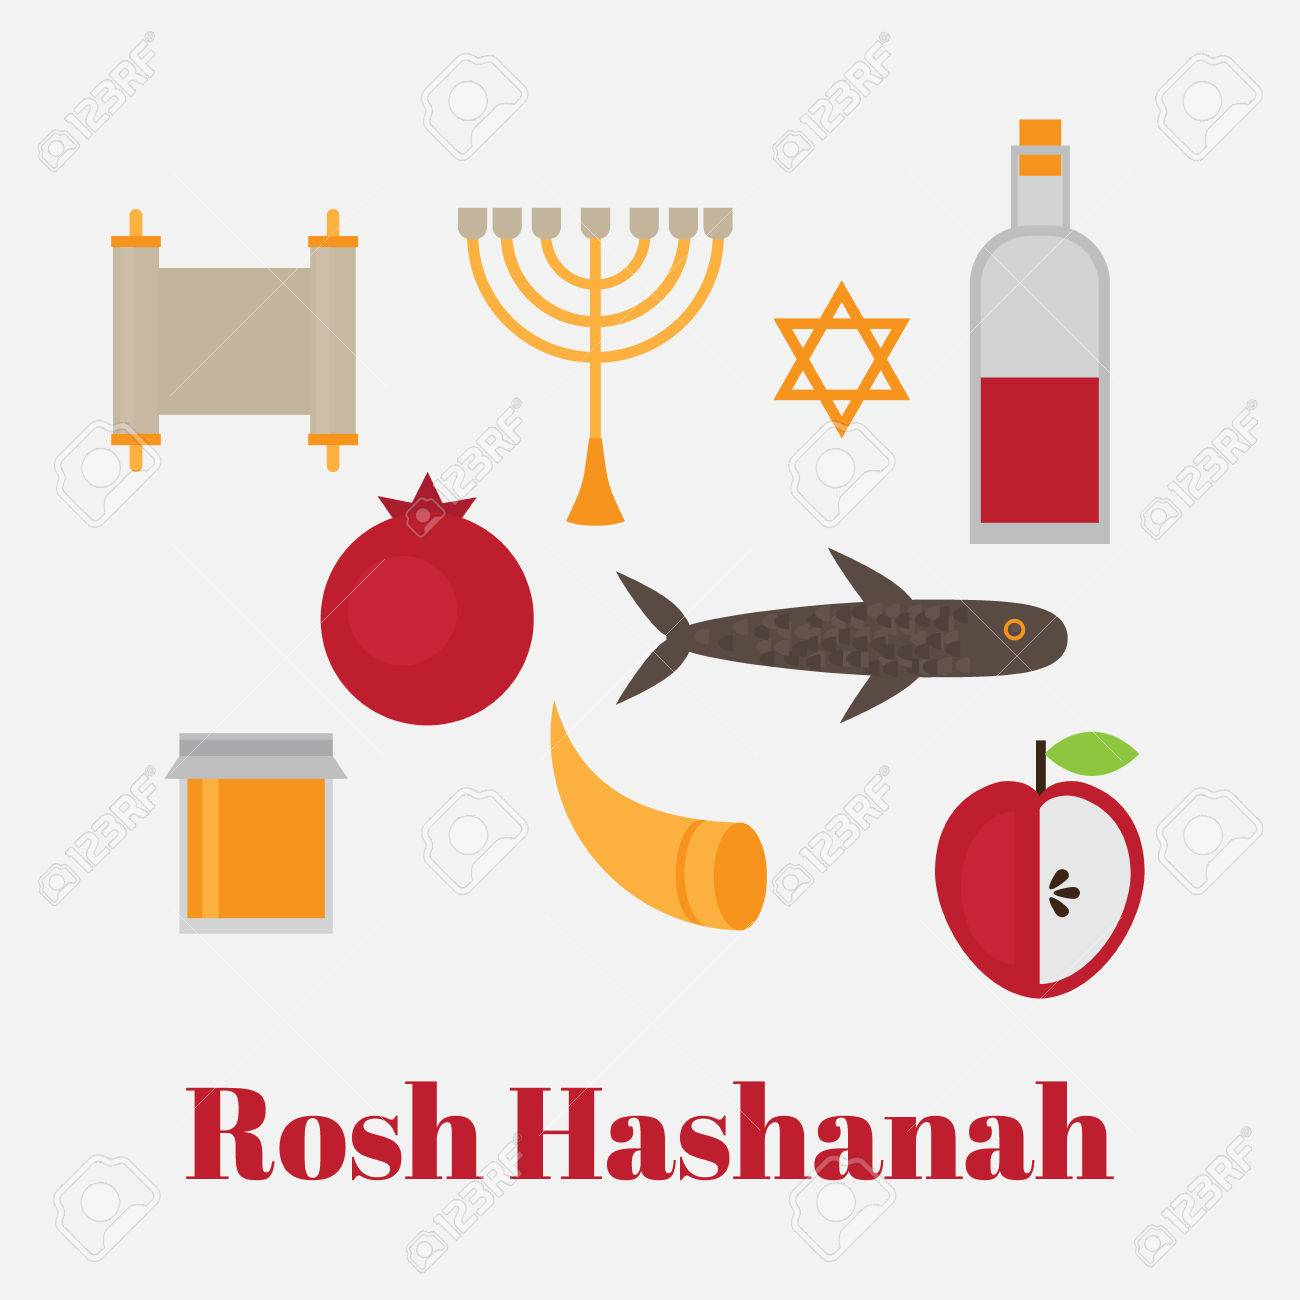 Rosh hashanah jewish new year greeting card hebrew symbols rosh hashanah jewish new year greeting card hebrew symbols judaism elements judaic religion kristyandbryce Choice Image